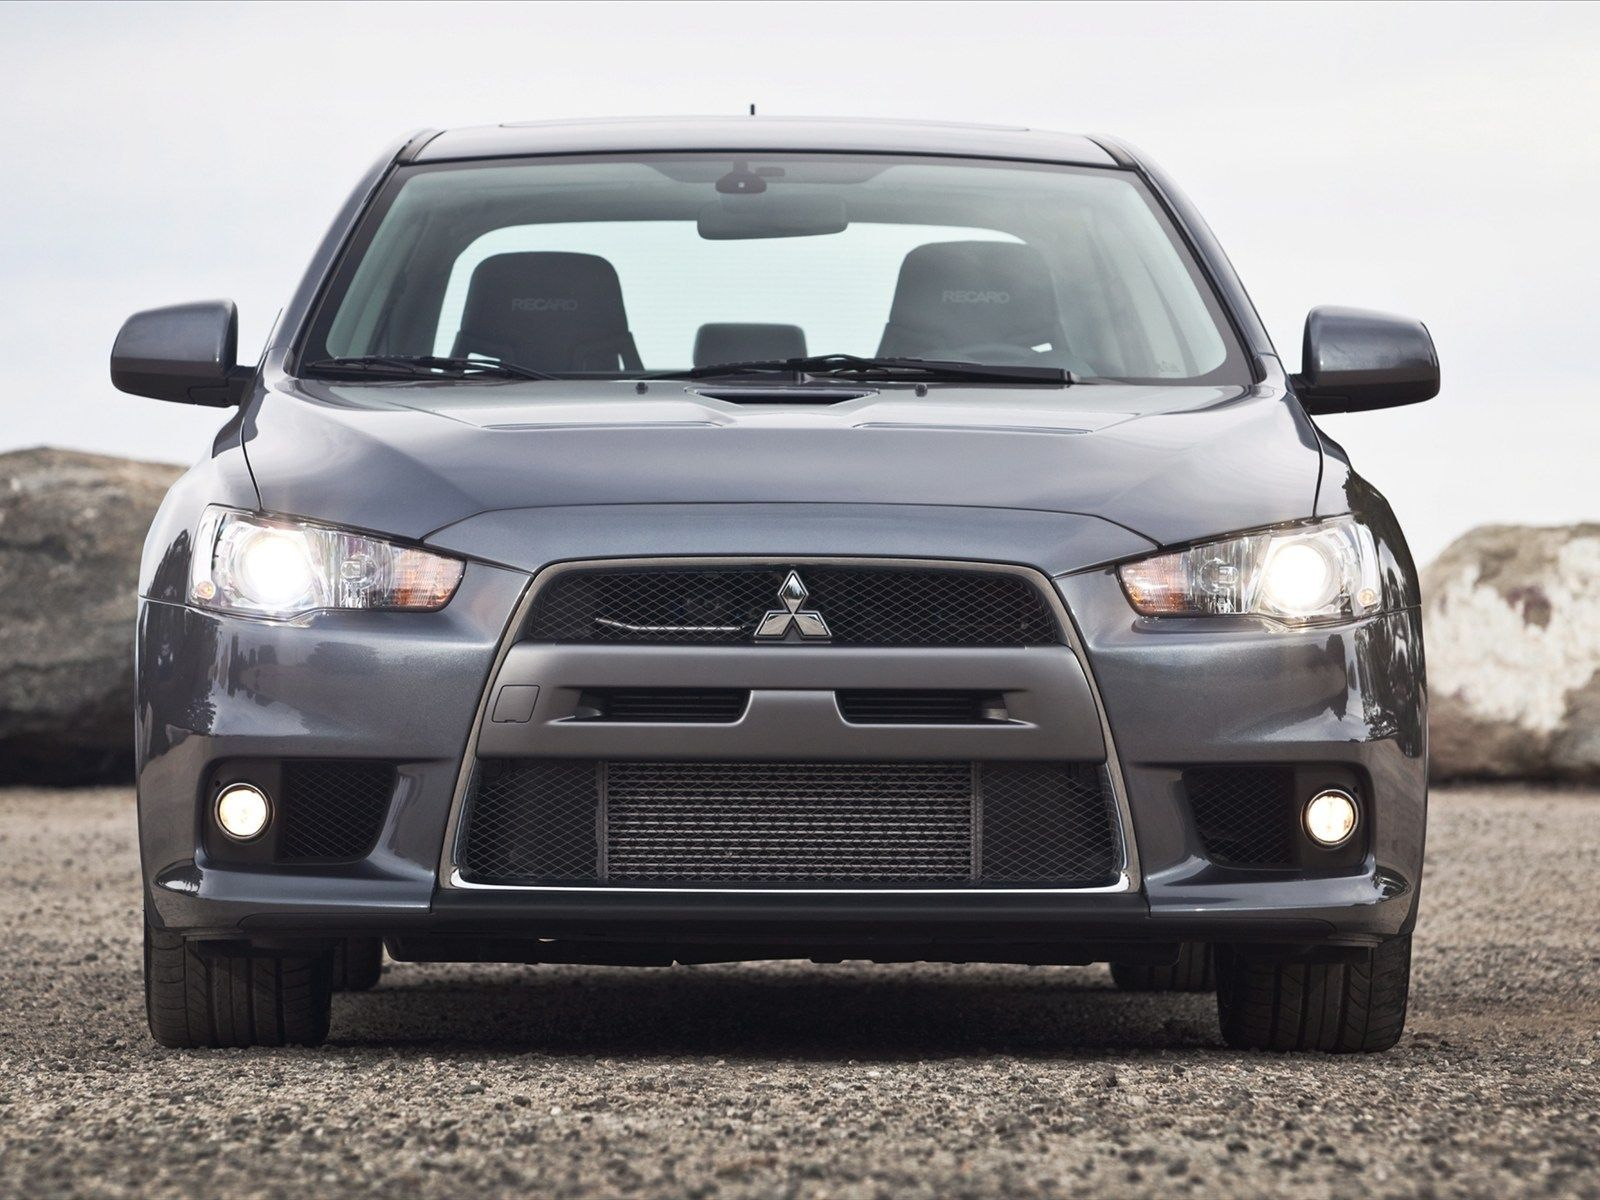 2014 mitsubishi lancer gives great comfort with its driving seats it has a nice modern exterior and interior design it is affordable and to know the price